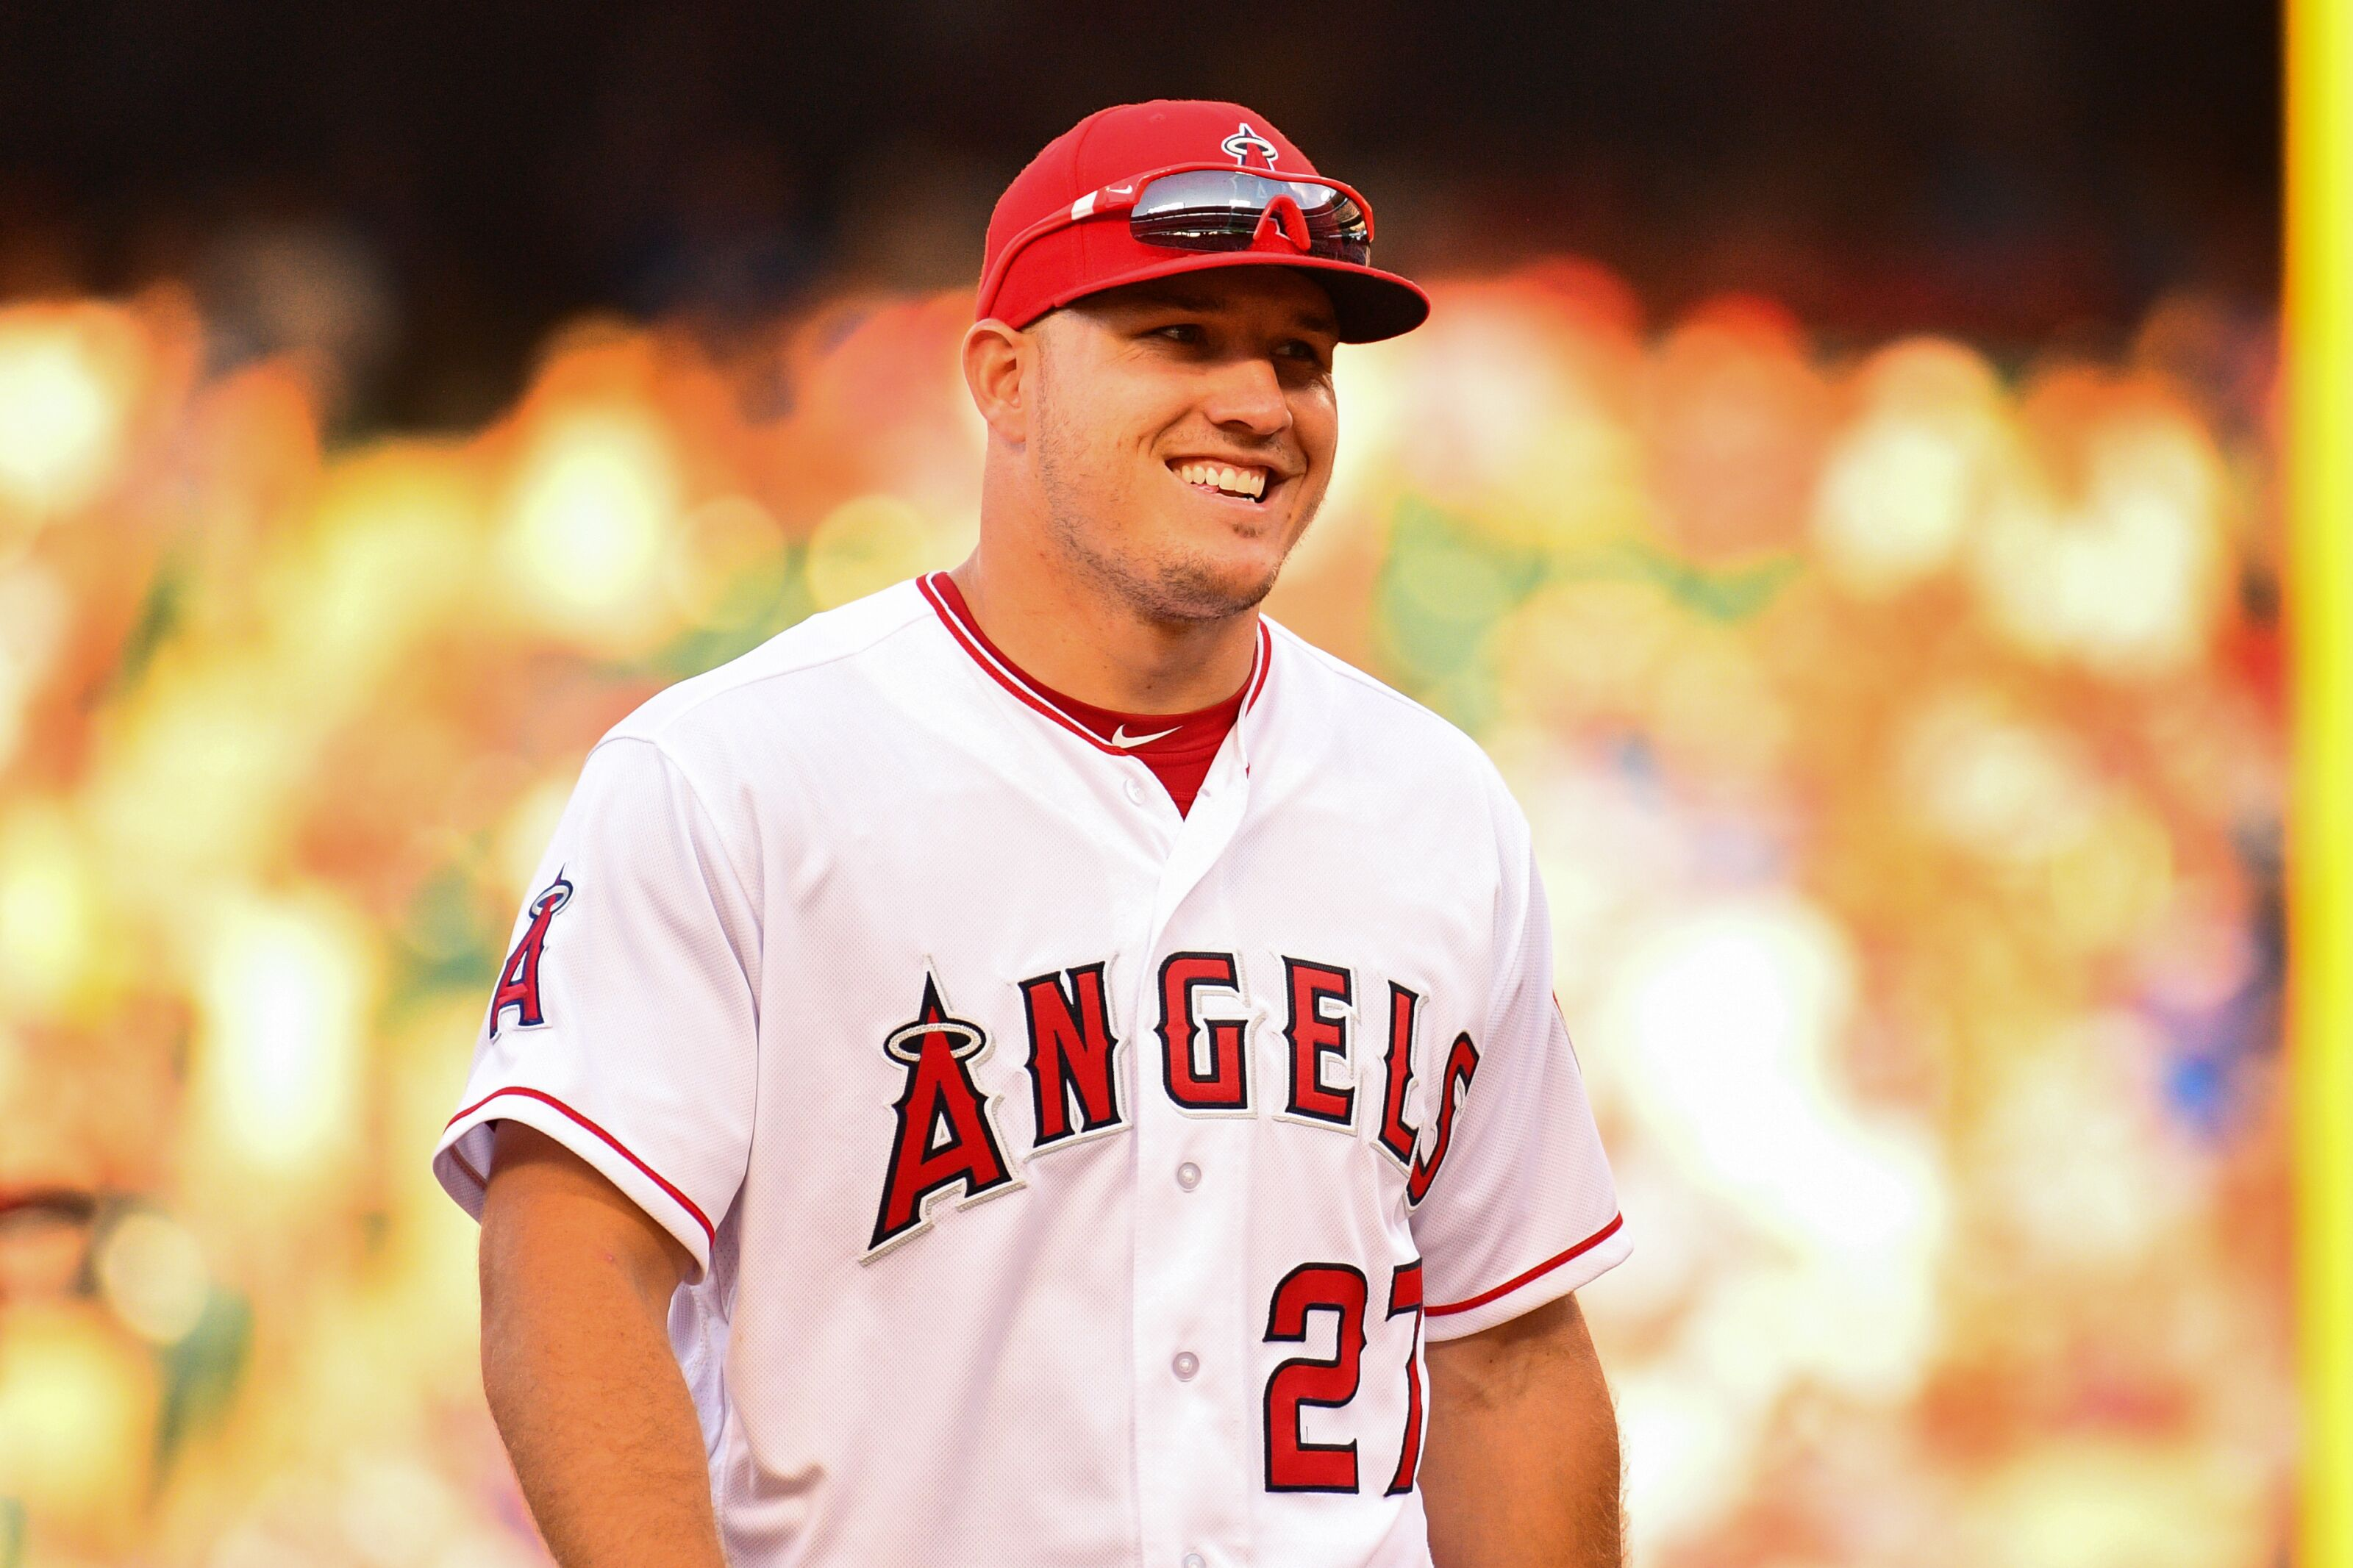 Los Angeles Angels: Manfred comes after Mike Trout